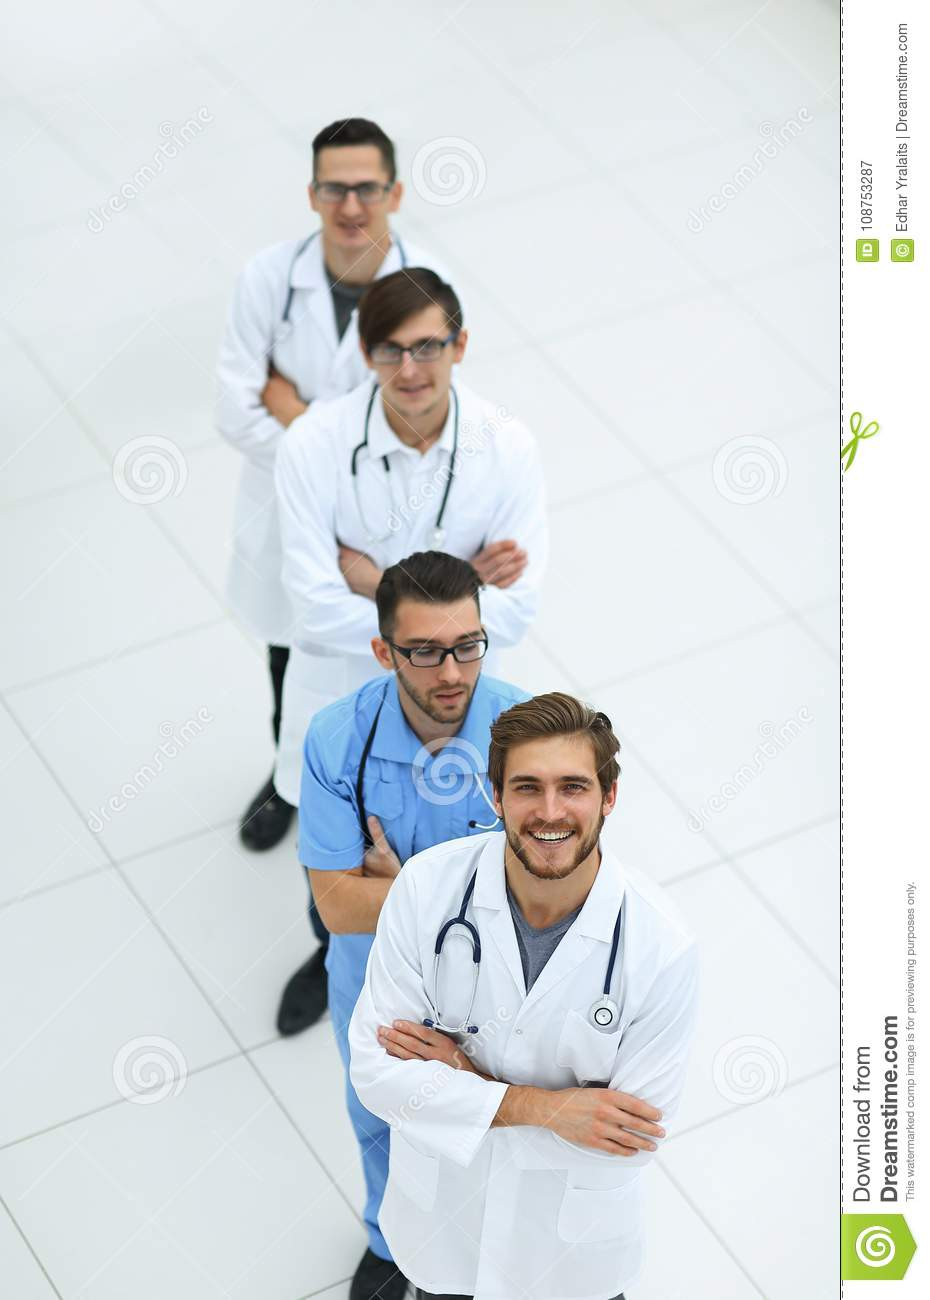 Group of medical personnel.isolated on white